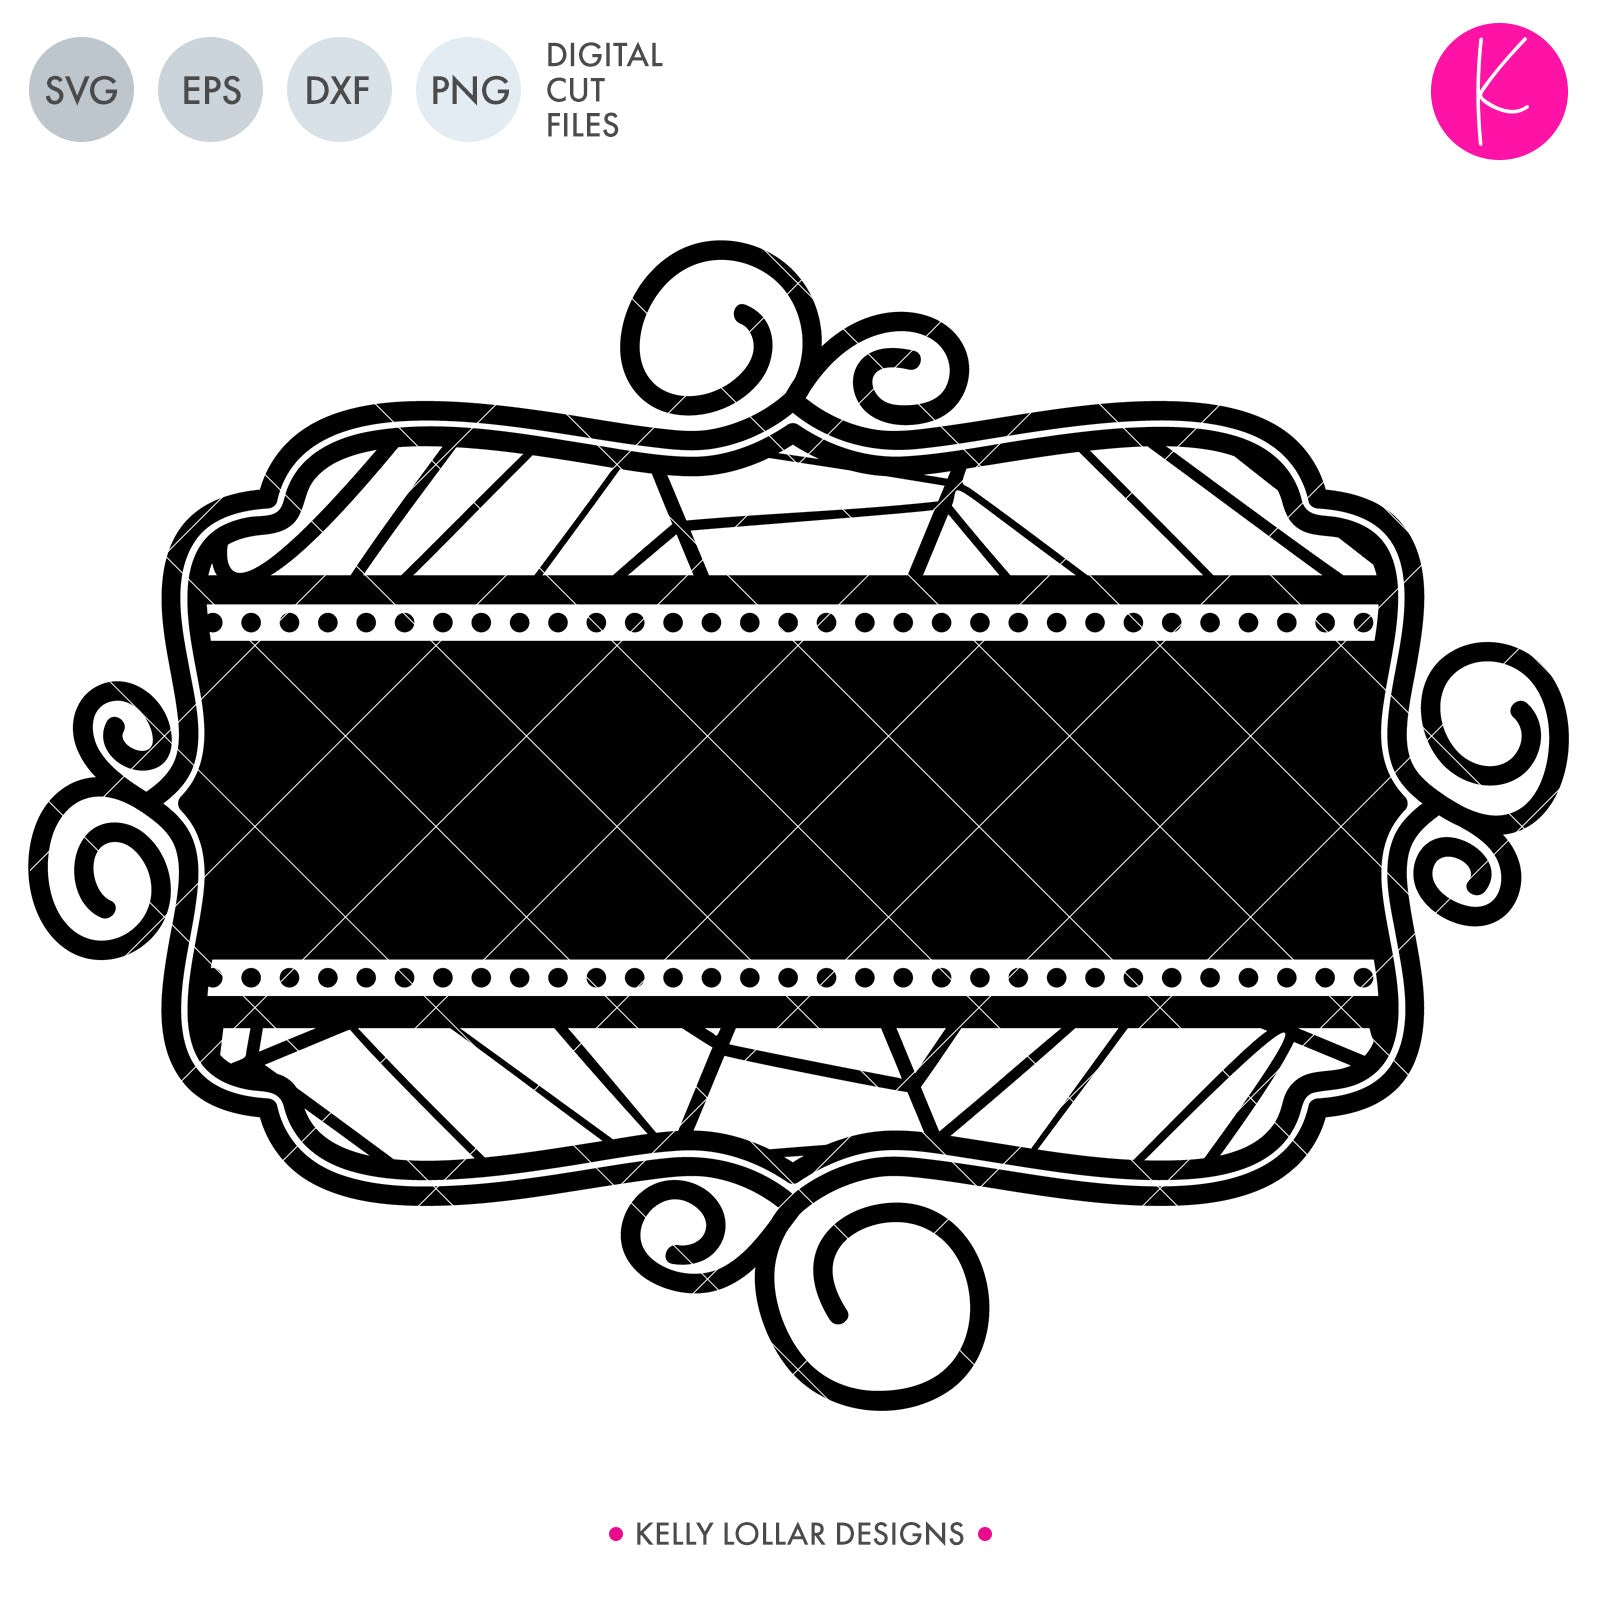 Web Split Monogram | SVG DXF EPS PNG Cut Files Wrought Iron Inspired Spider Web Split Monogram Frame for Halloween Shirts and Decor | SVG DXF EPS PNG Cut Files Wide oval monogram frame with cobweb background and curly border